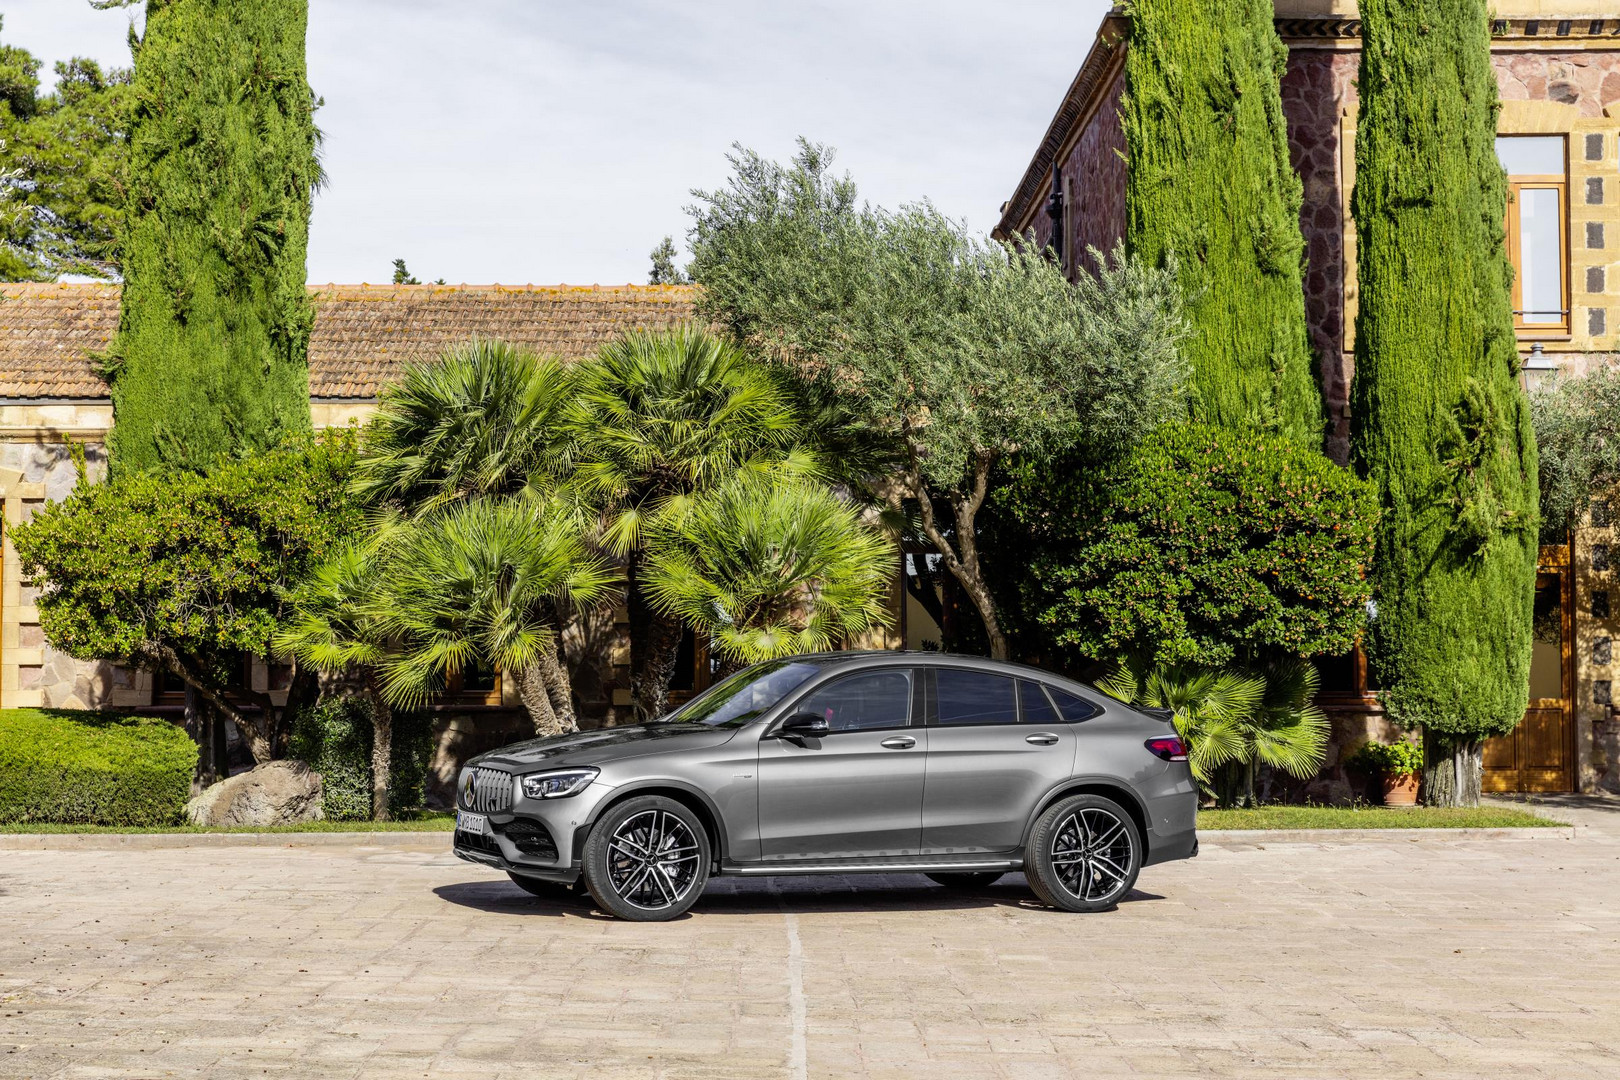 Mercedes-AMG GLC 43 Coupe Side View